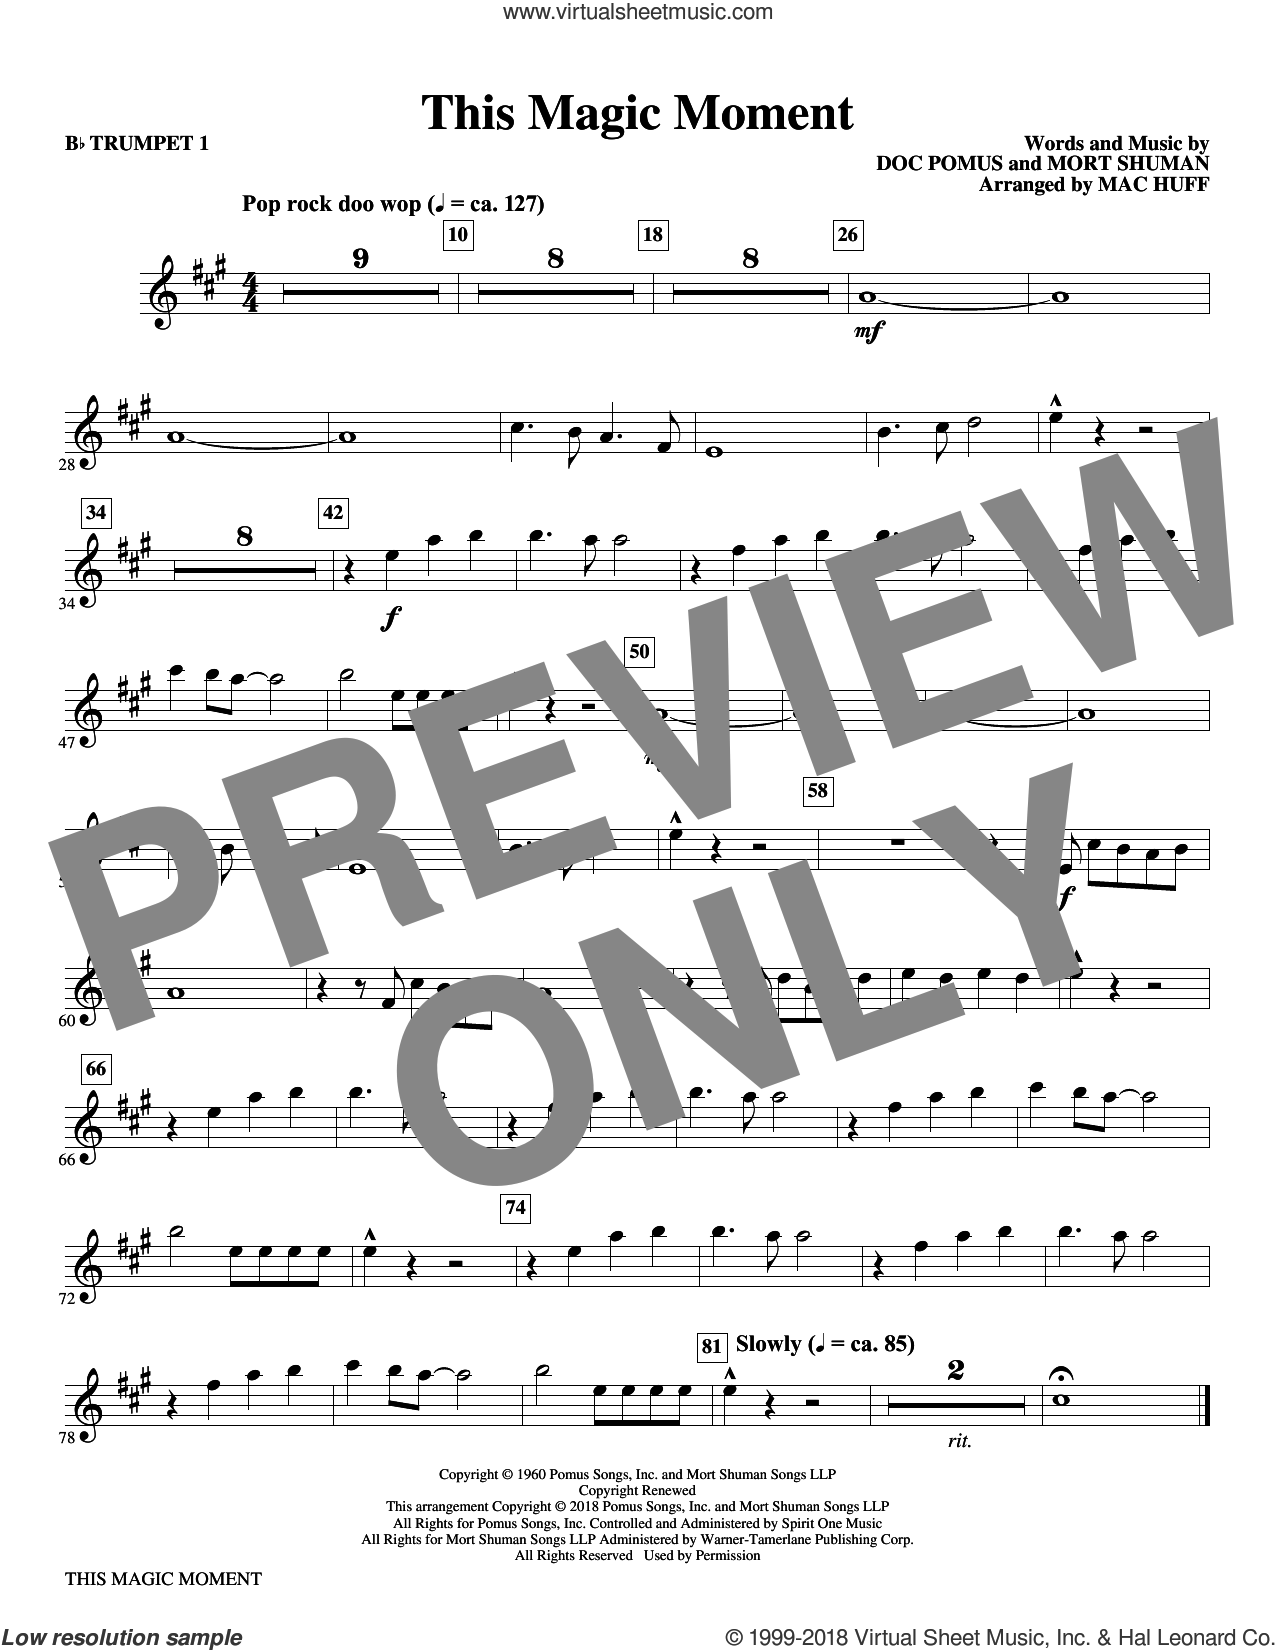 This Magic Moment  (Arr. Mac Huff) sheet music for orchestra/band (Bb trumpet 1) by Ben E. King & The Drifters, Mac Huff, Jay & The Americans, Doc Pomus and Mort Shuman, wedding score, intermediate skill level